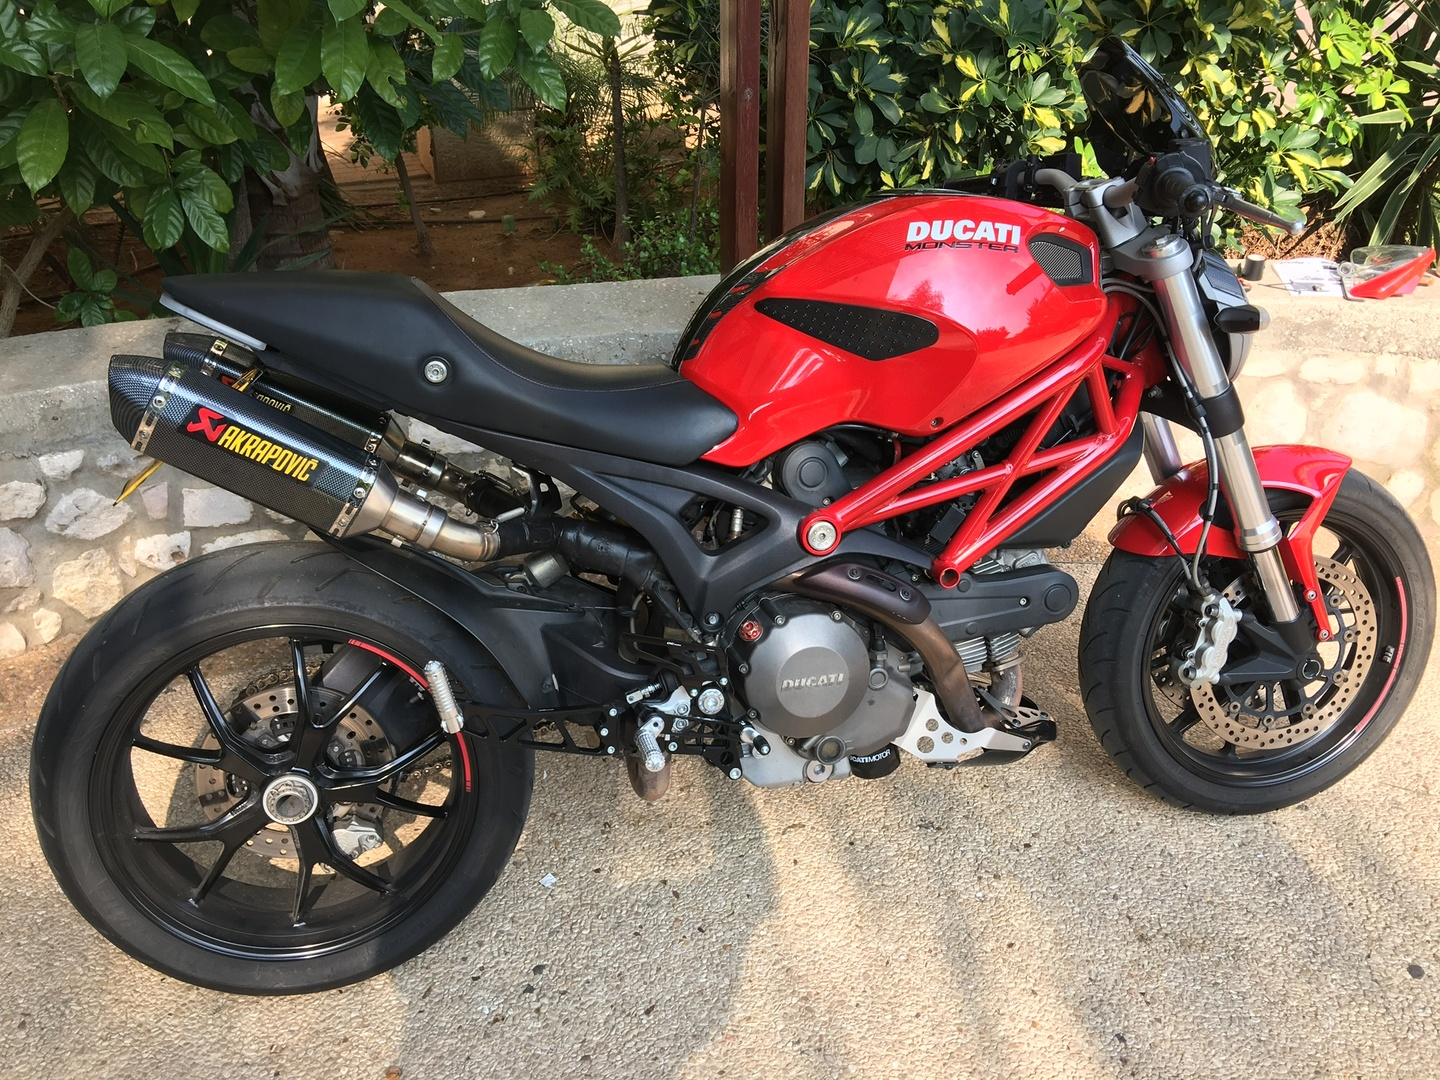 Ducati Monster Tail Tidy Kit Integrated Signals By Nrc S2r 800 Wiring Diagram David F Verified Customer Review Of 696 1100